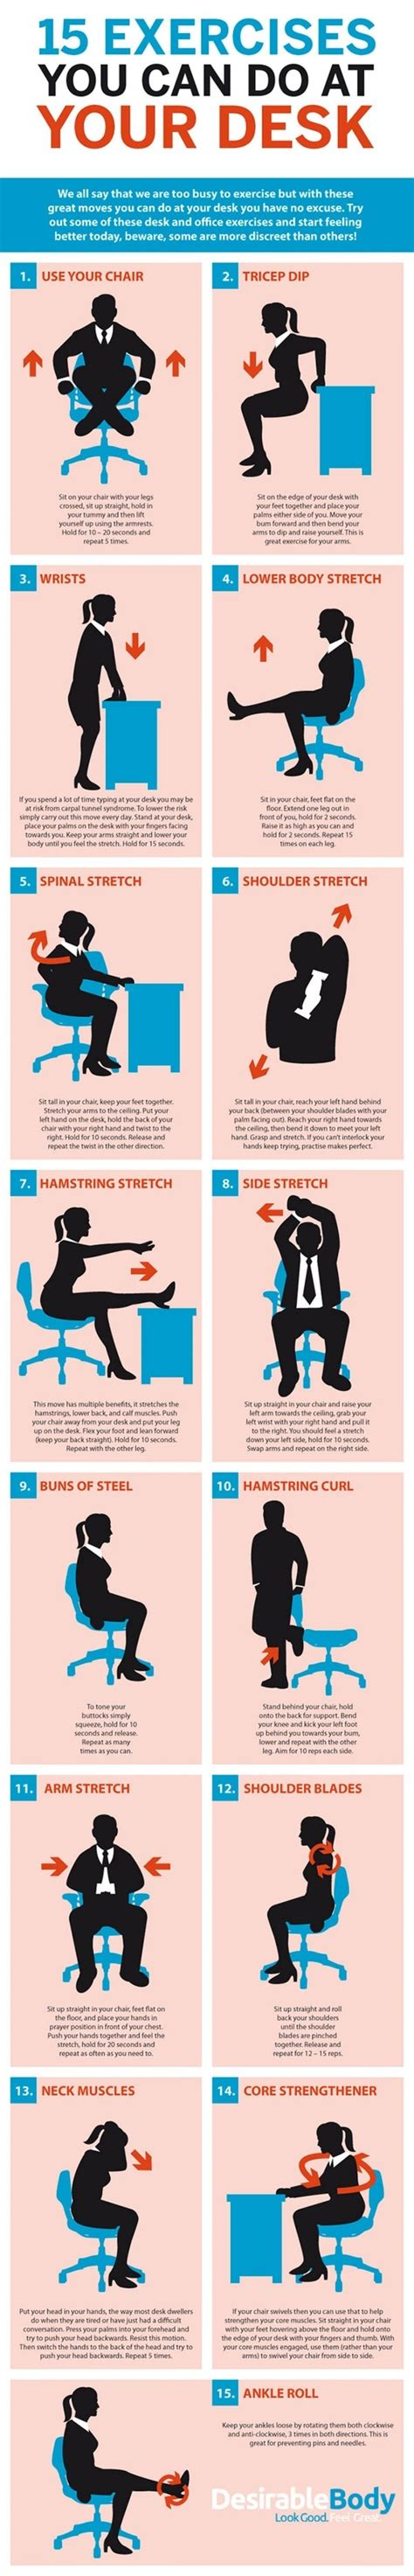 exercises to do at your desk with pictures what are the best exercises and stretches to do at your